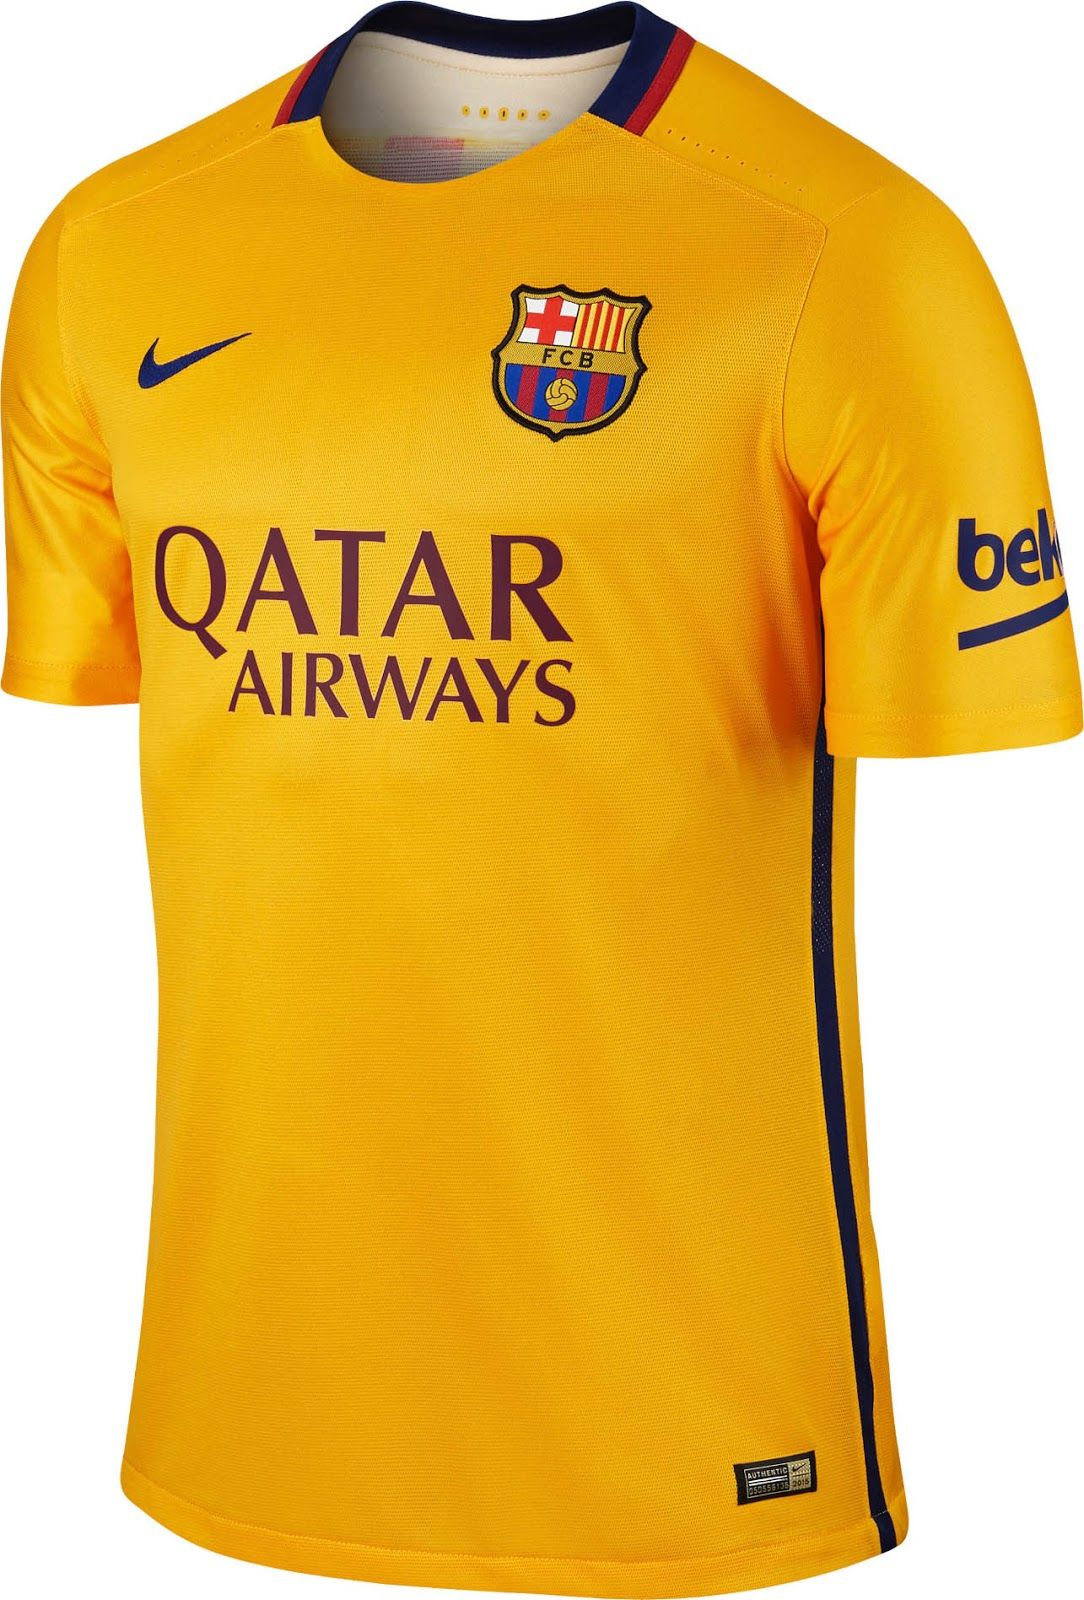 ab39e0933 2015-16 Official Nike FC BARCELONA Away Football Soccer Shirt Jersey